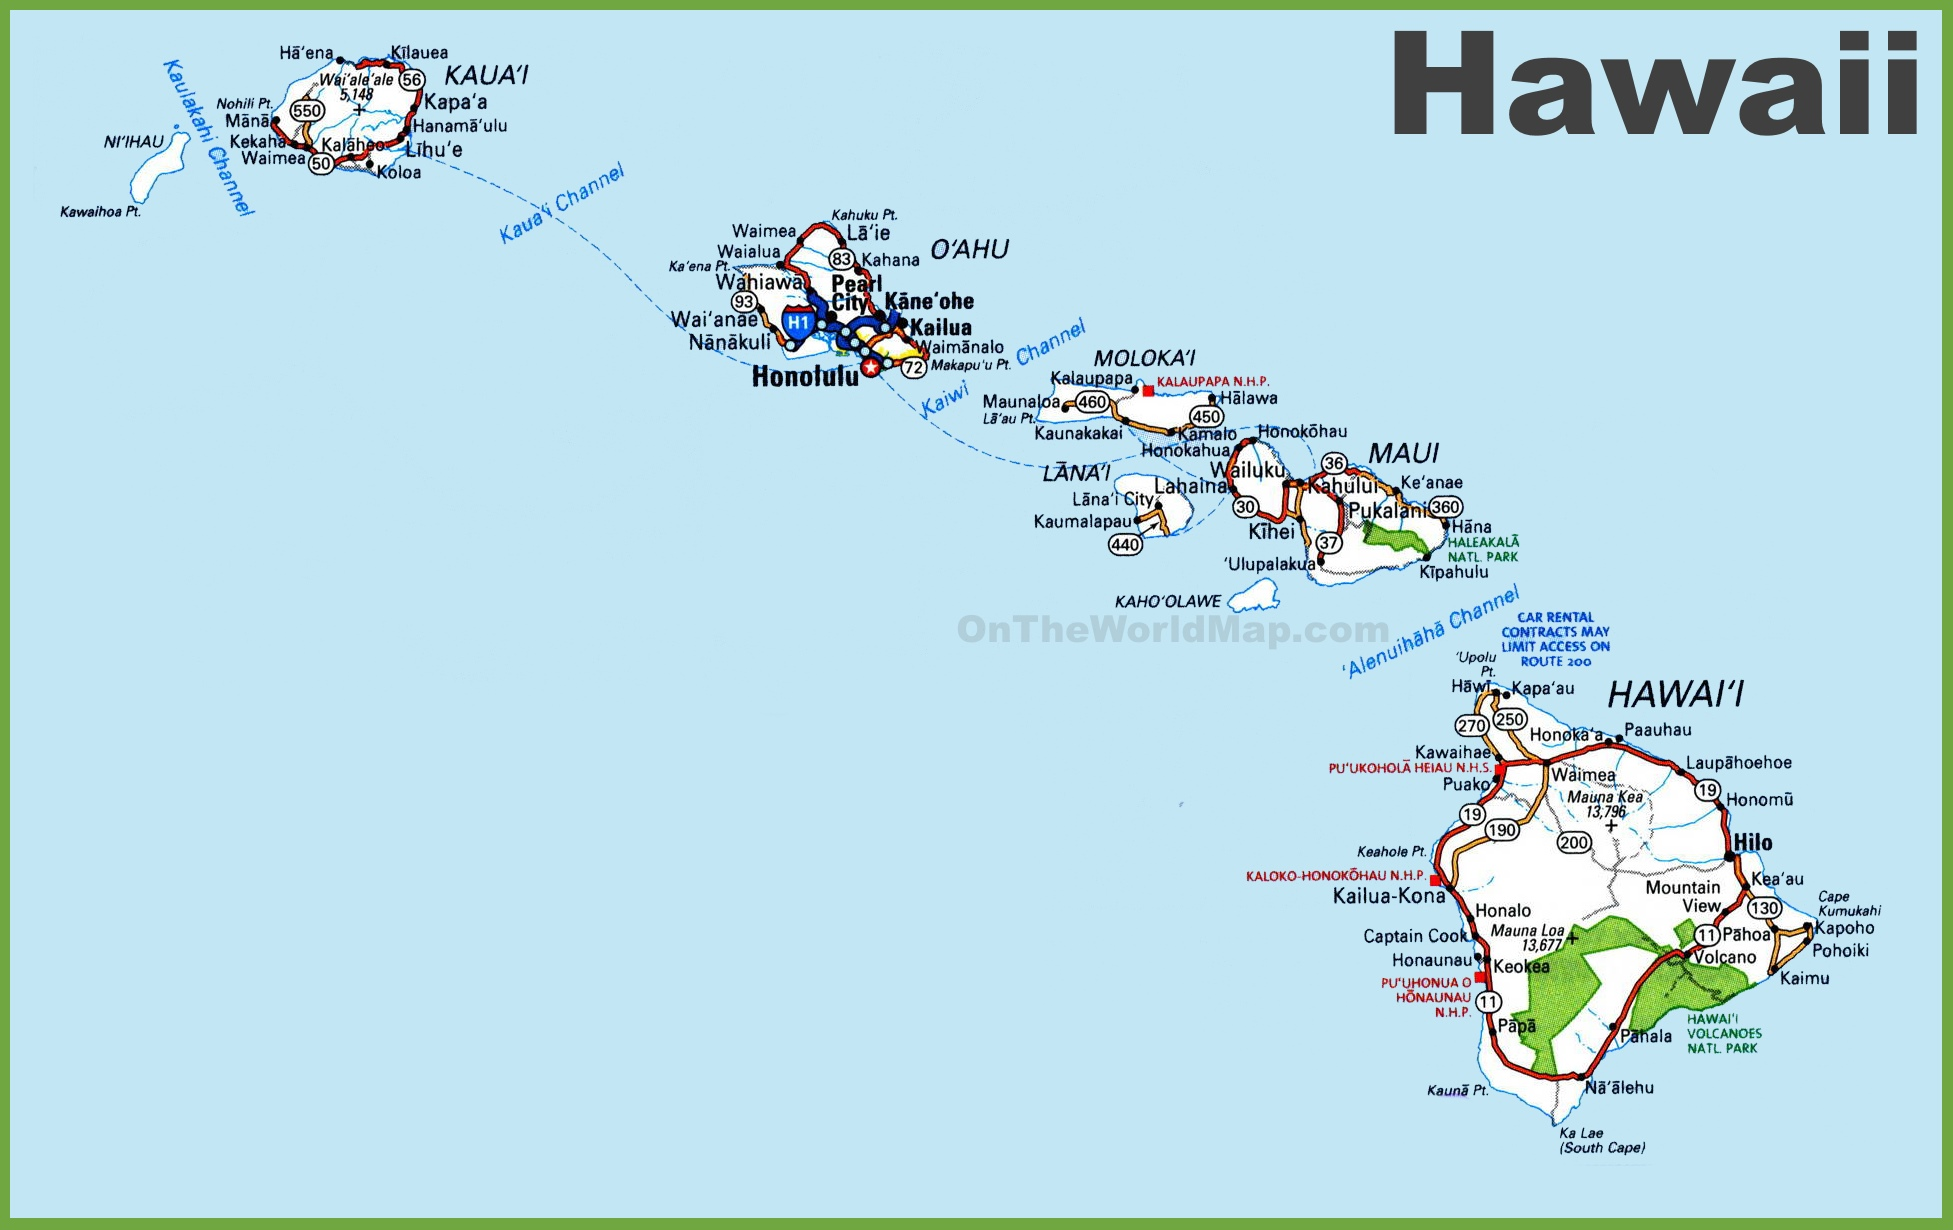 Satisfactory image intended for printable maps of hawaii